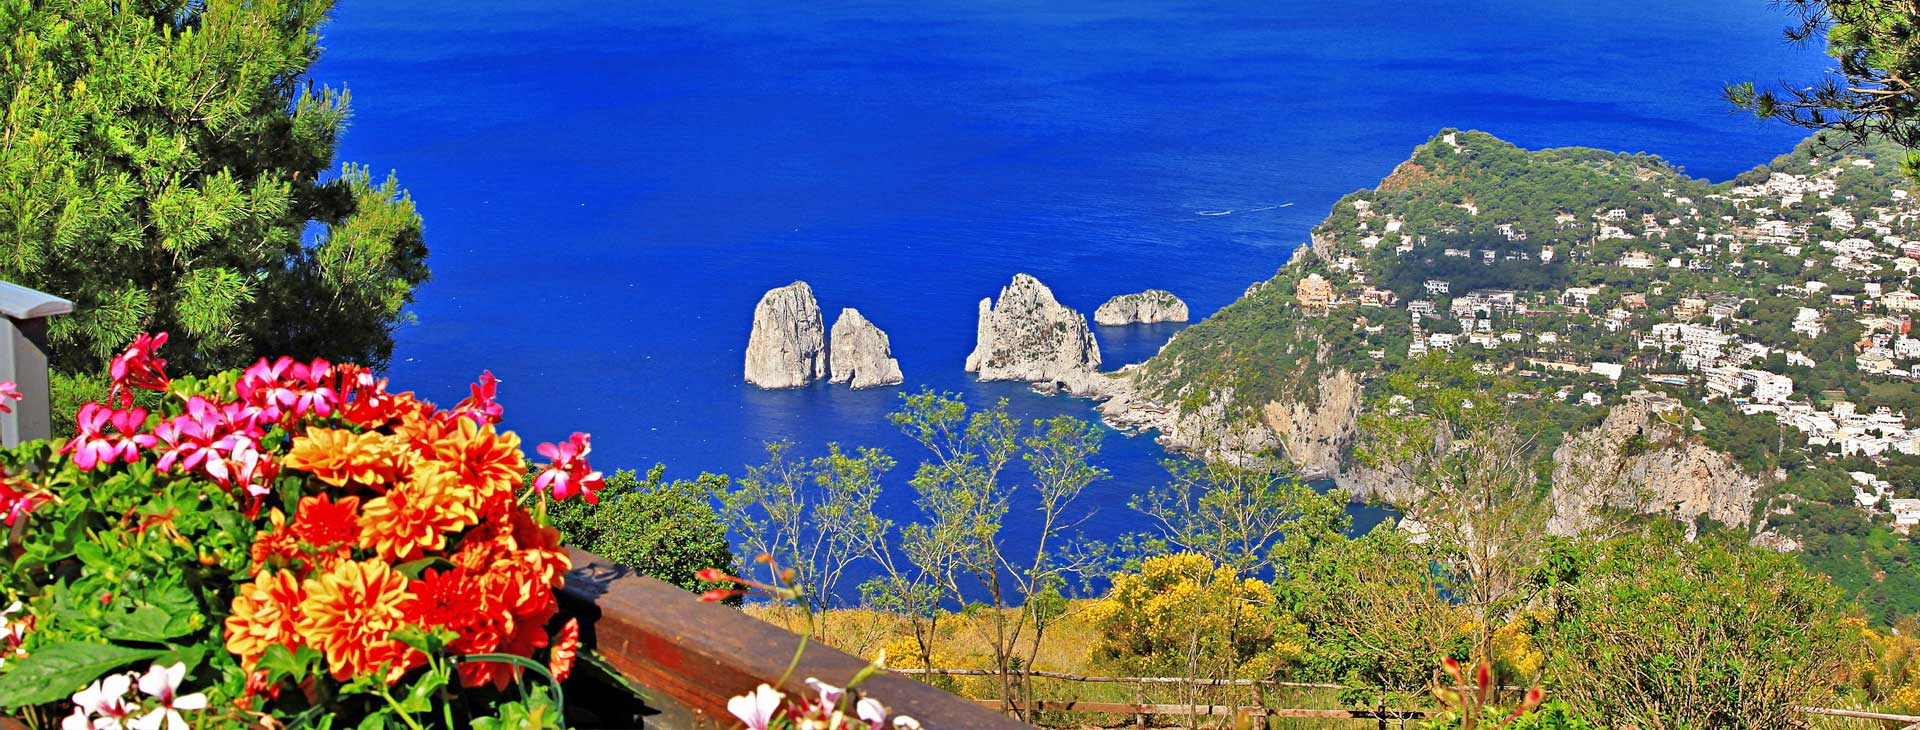 View of Capri Island with Faraglioni